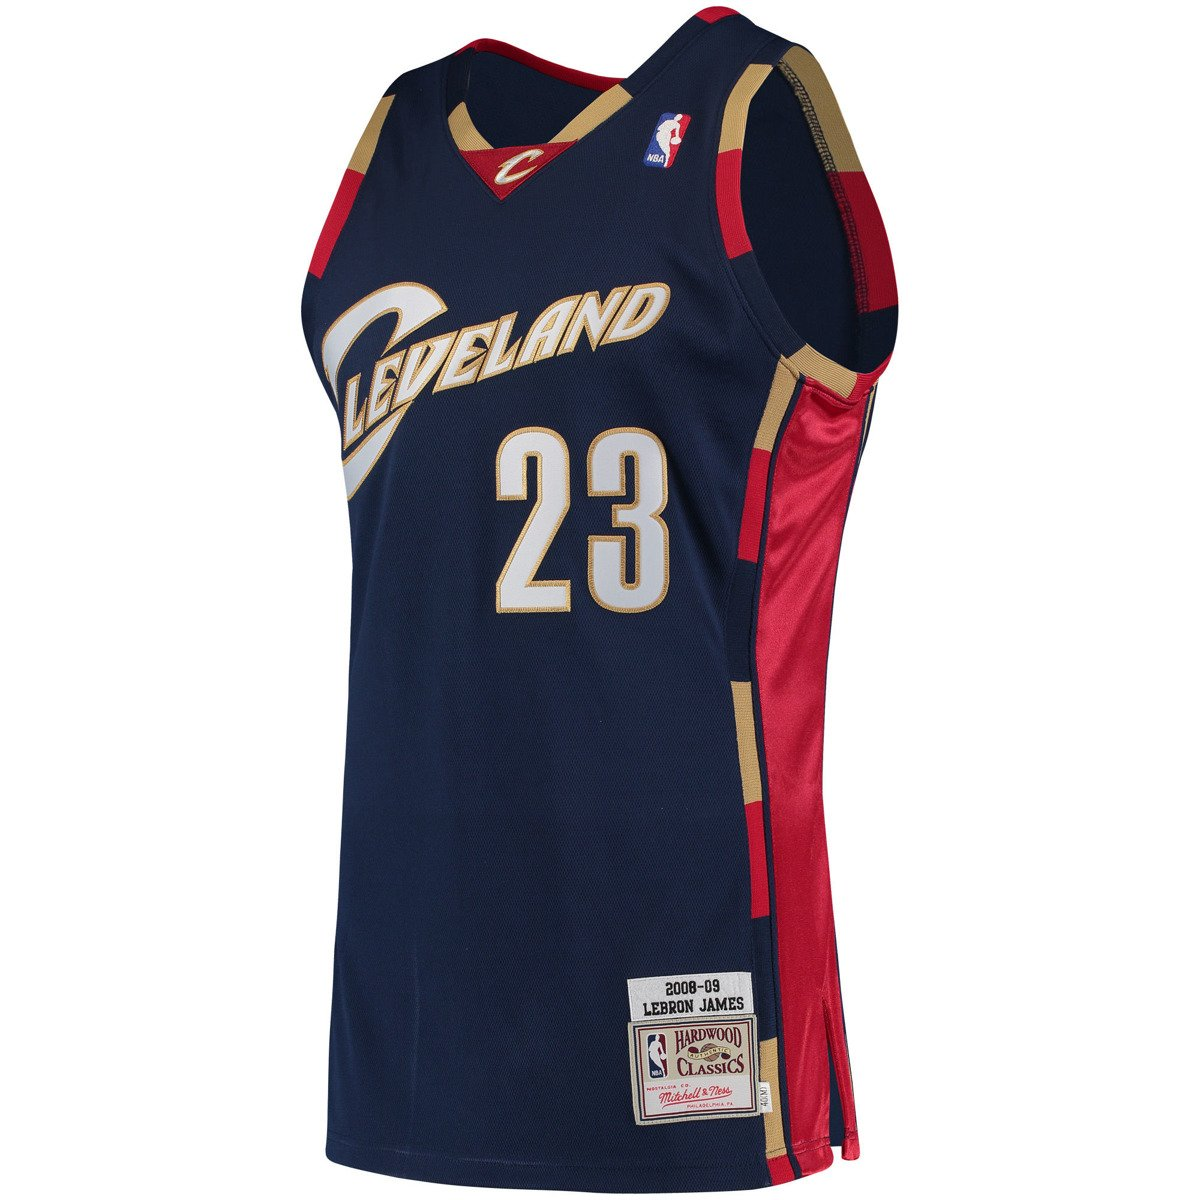 official photos cb012 2a0ec Mitchell & Ness LeBron James 2008-09 NBA Hardwood Classics Authentic  Cleveland Cavaliers Jersey